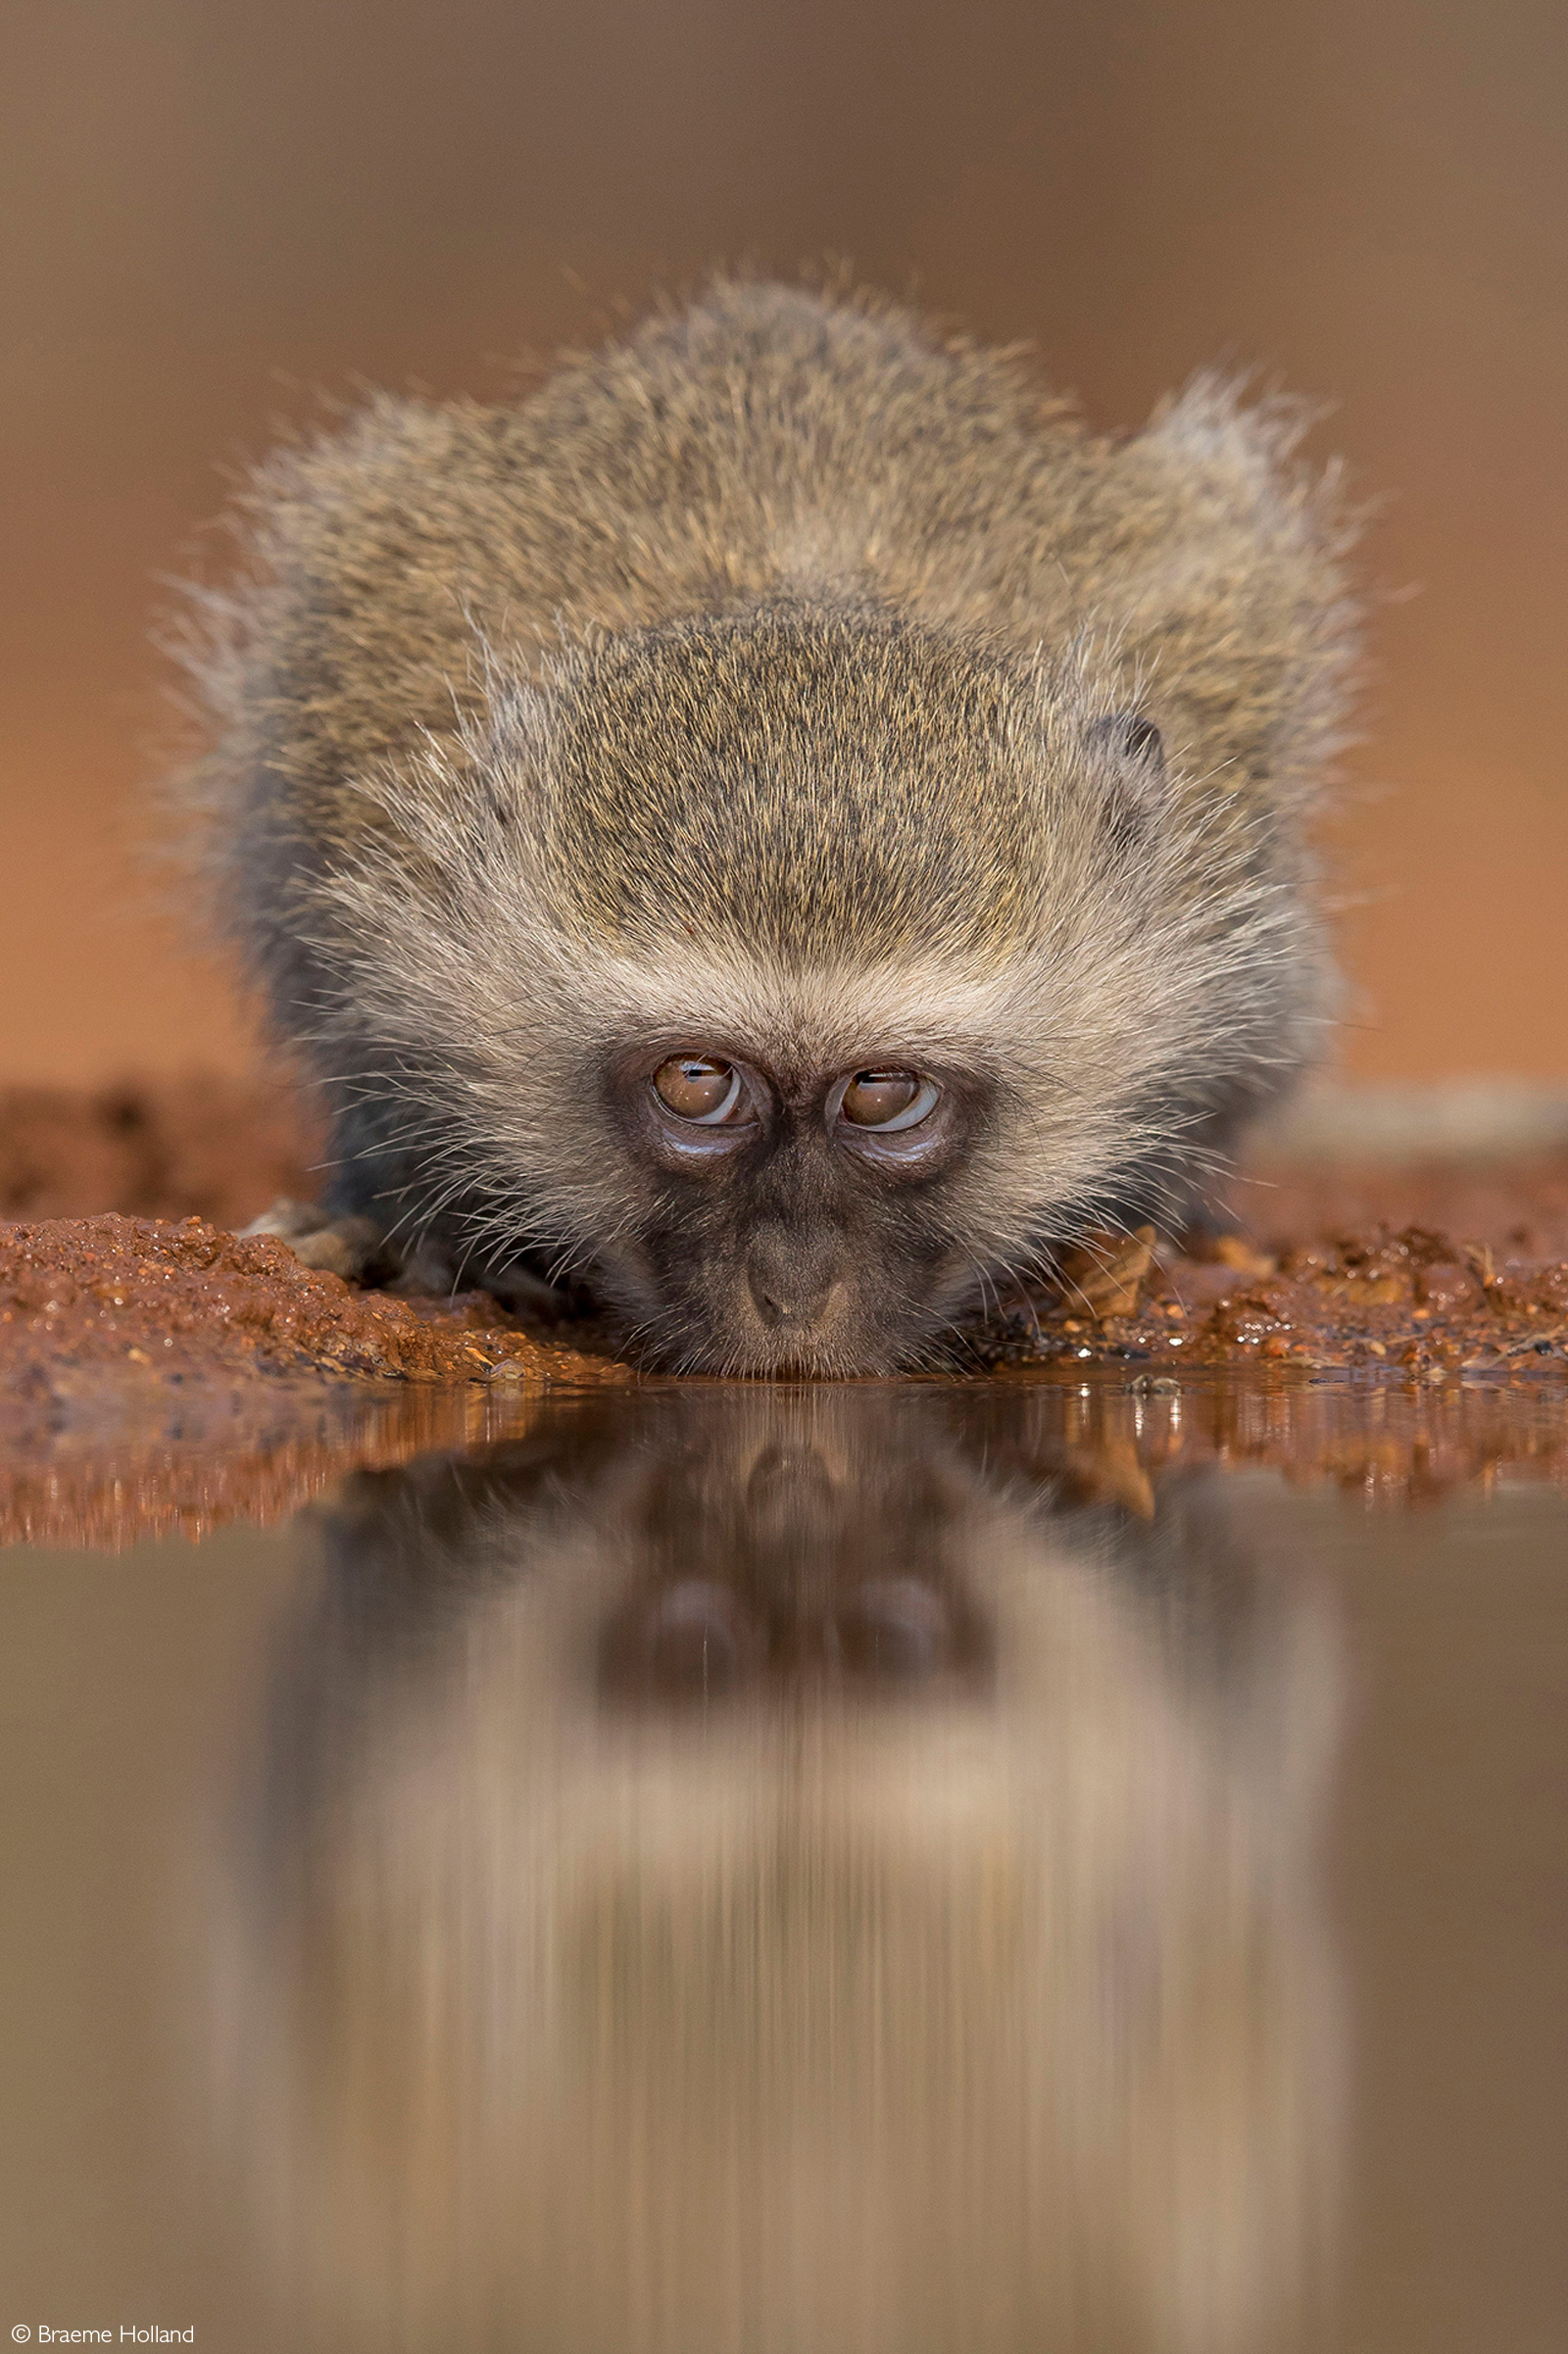 A rather mischievious-looking vervet monkey eyes out the photographer. Greater Kruger, South Africa © Braeme Holland